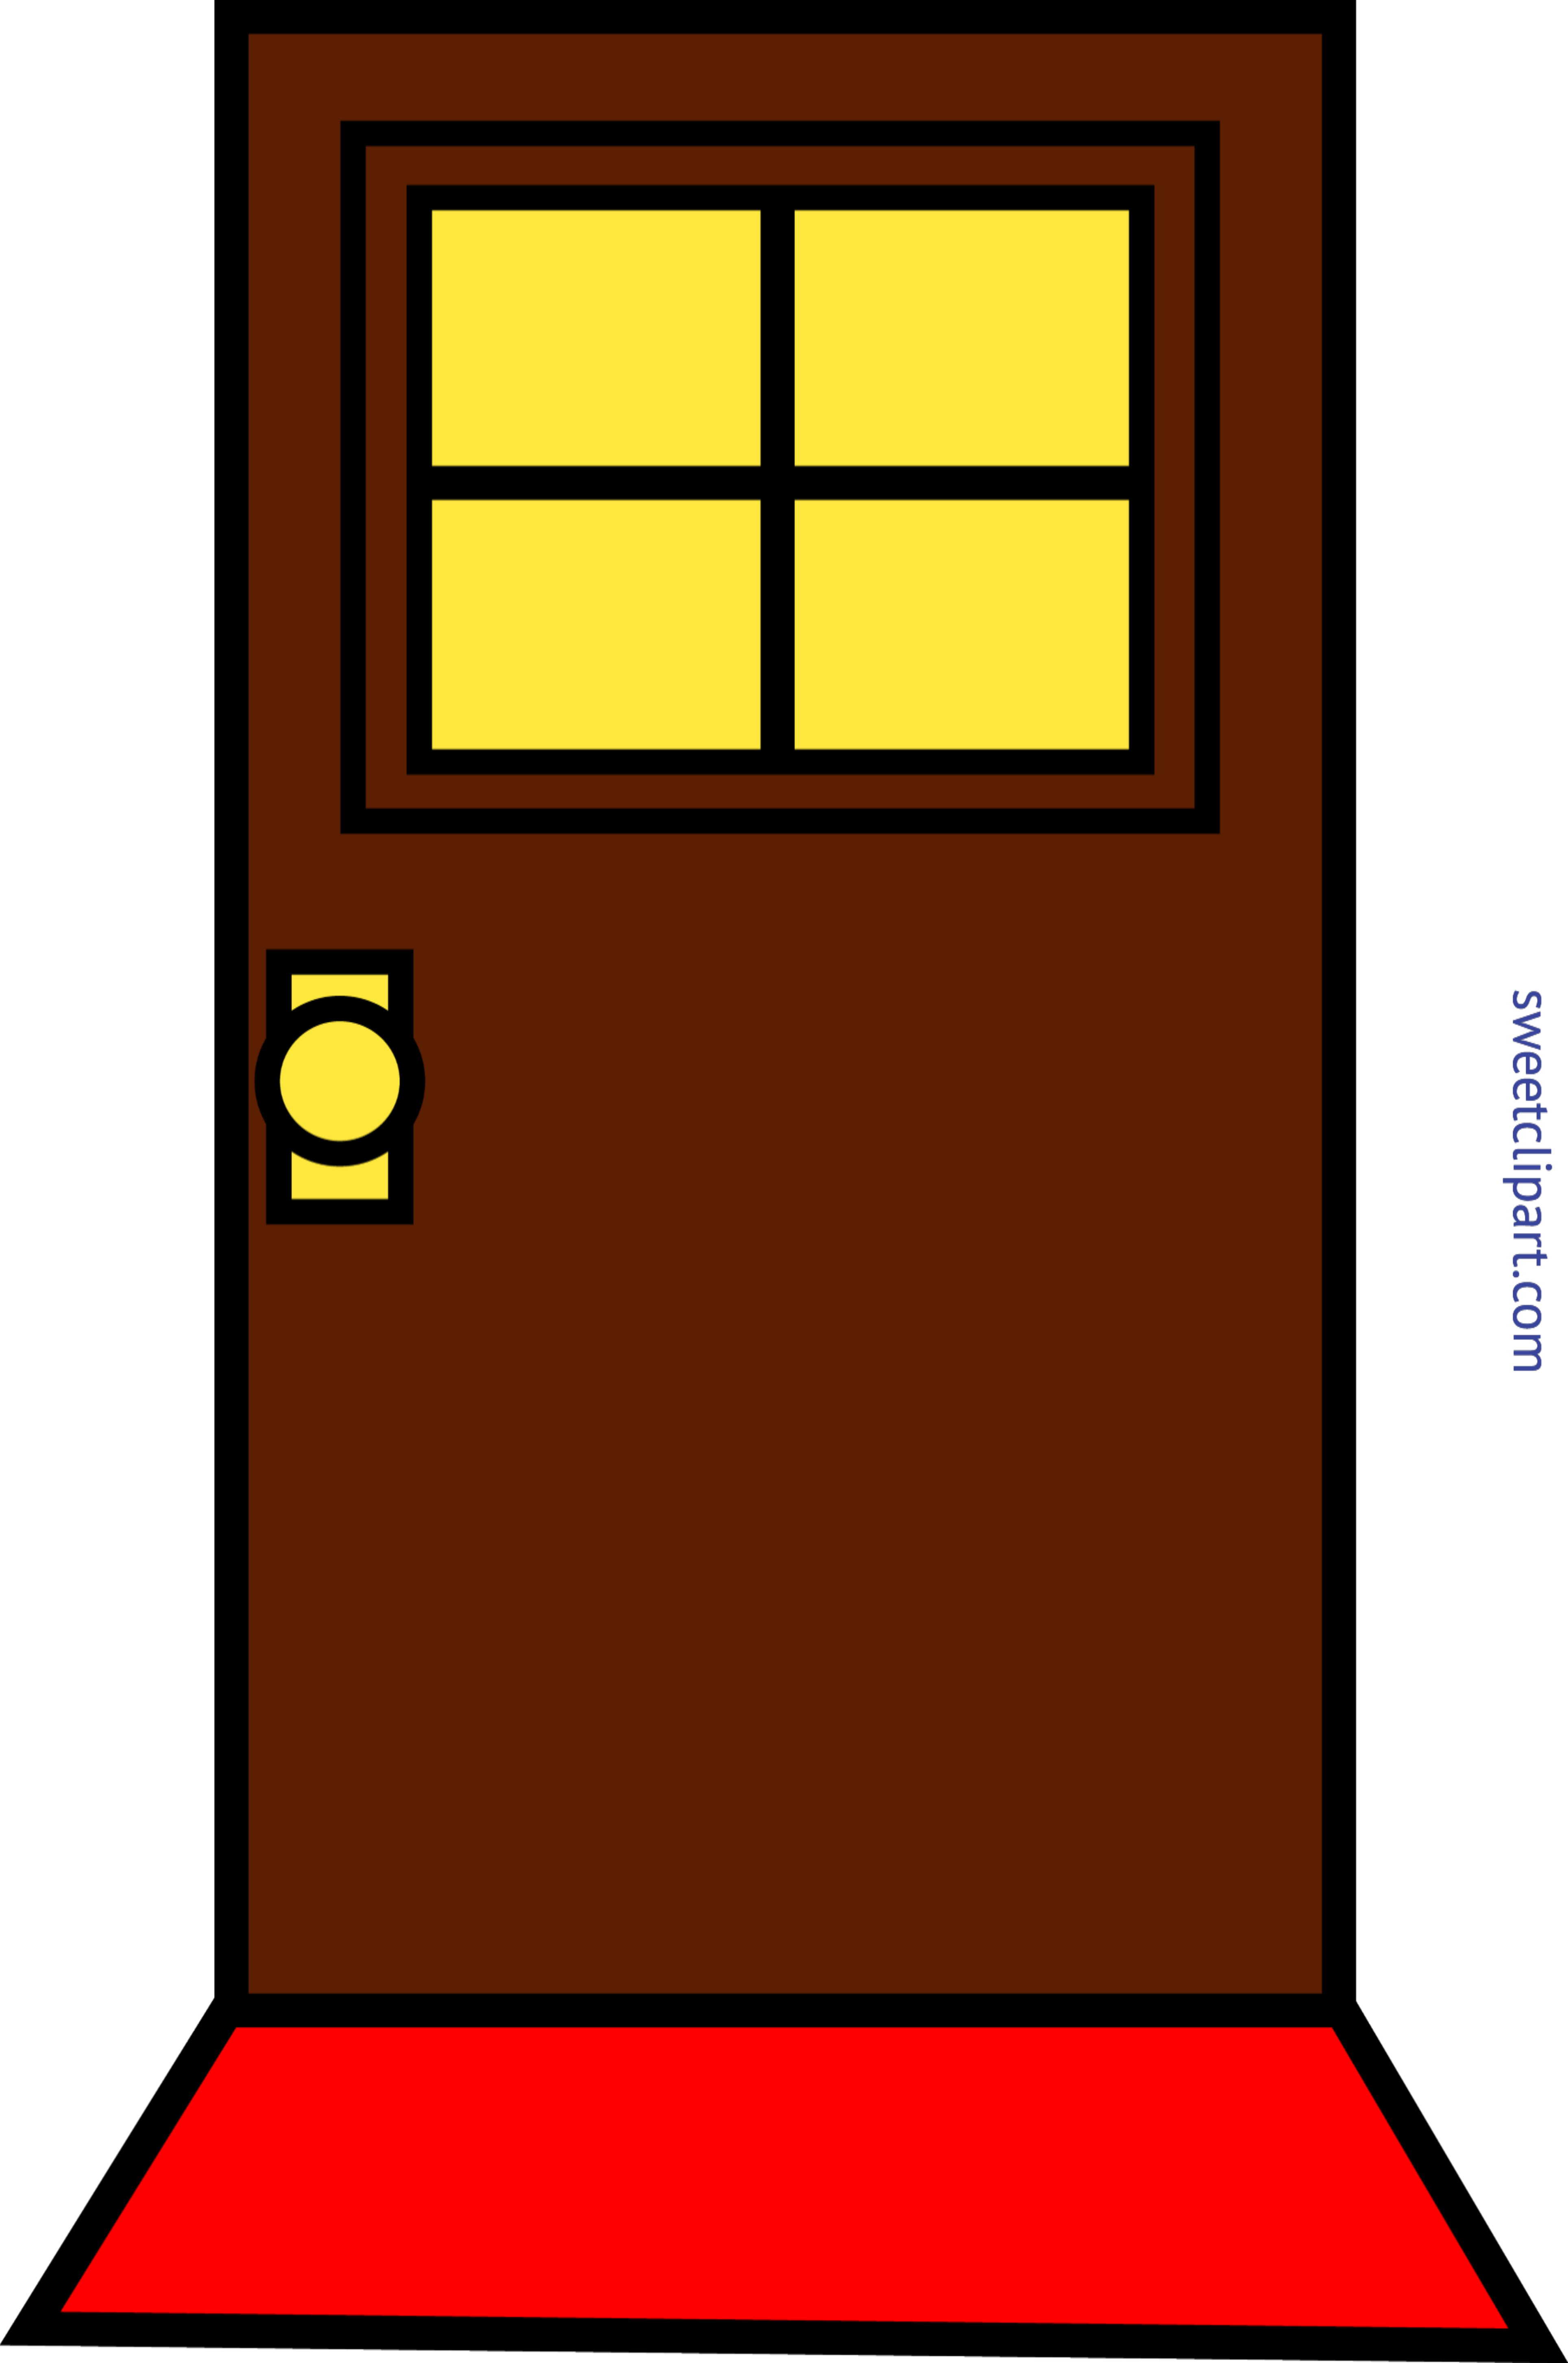 Door clipart rectangle object. Domestic simple brown clip